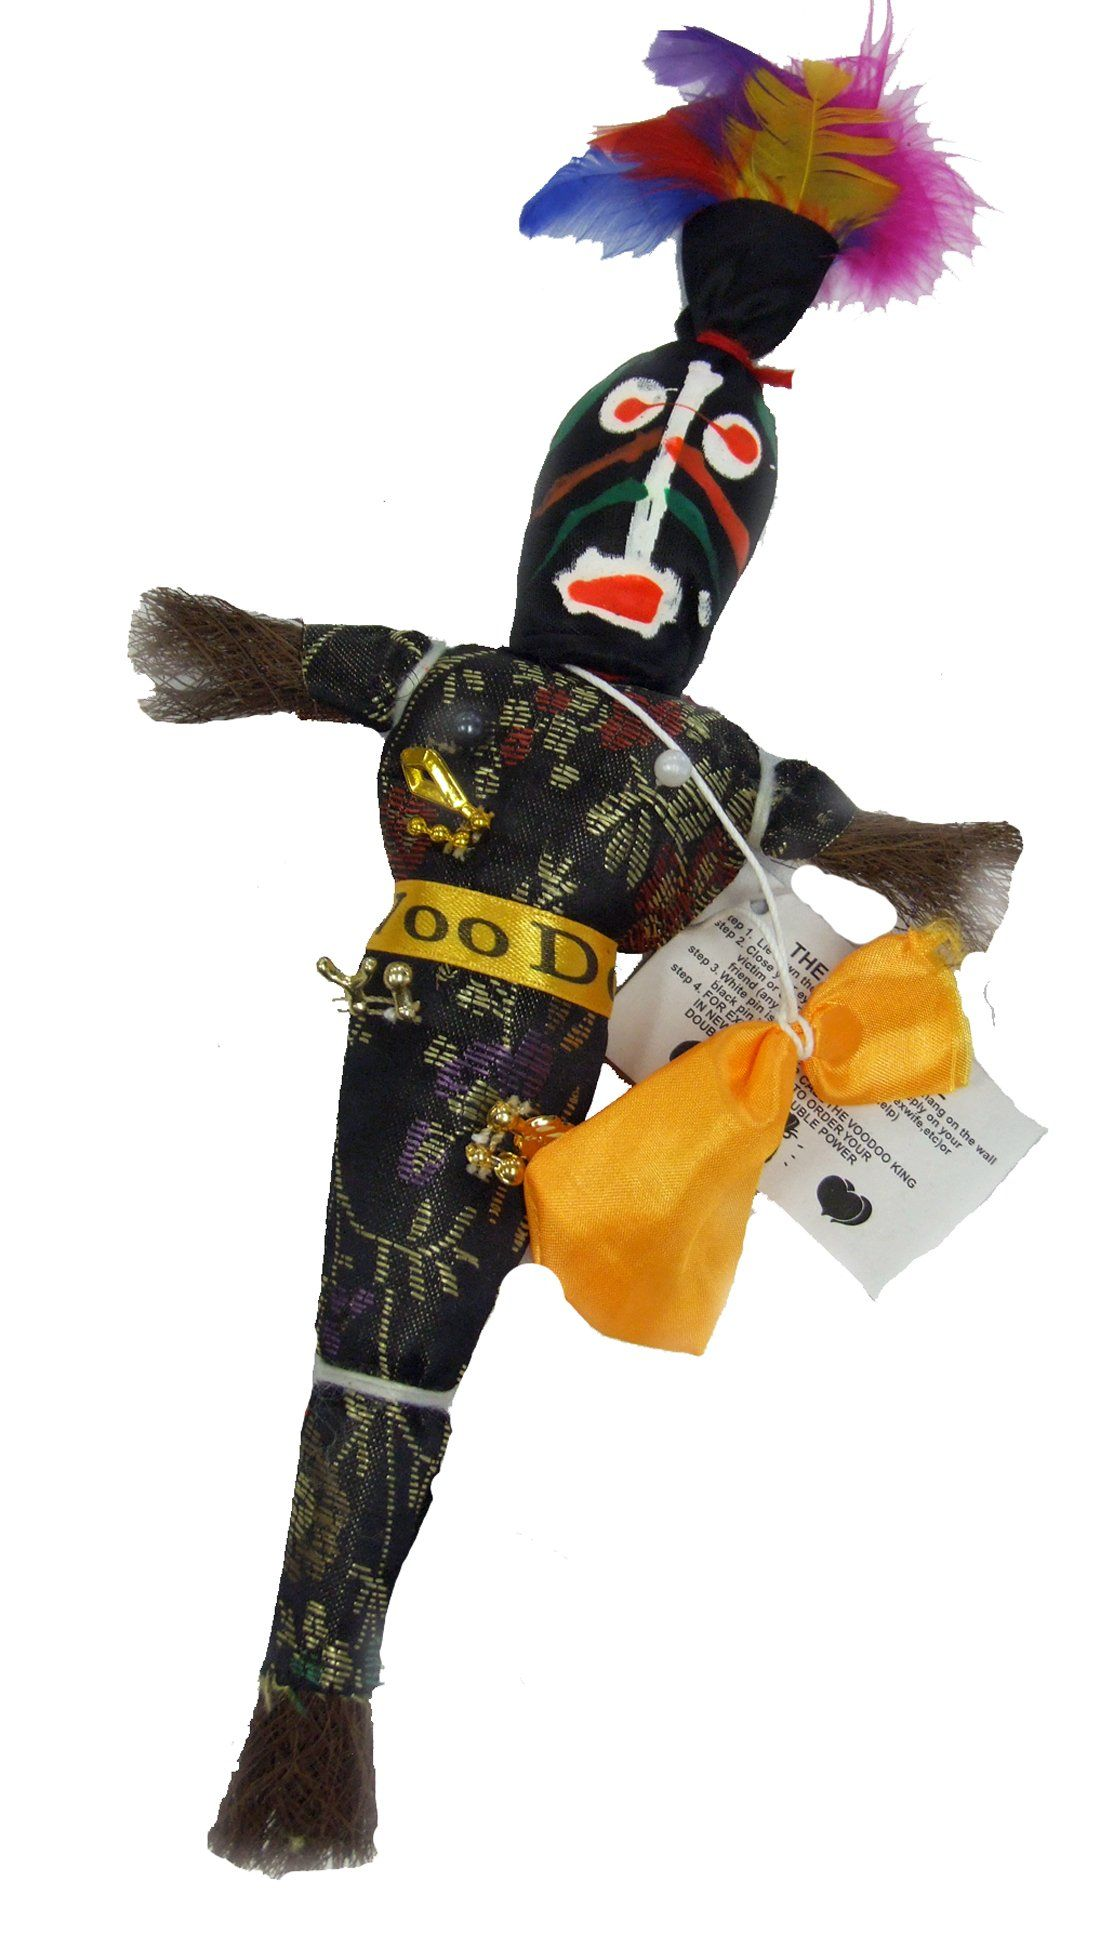 Voodoo Doll K-4 Good Luck Power Money Health Prosper Revenge